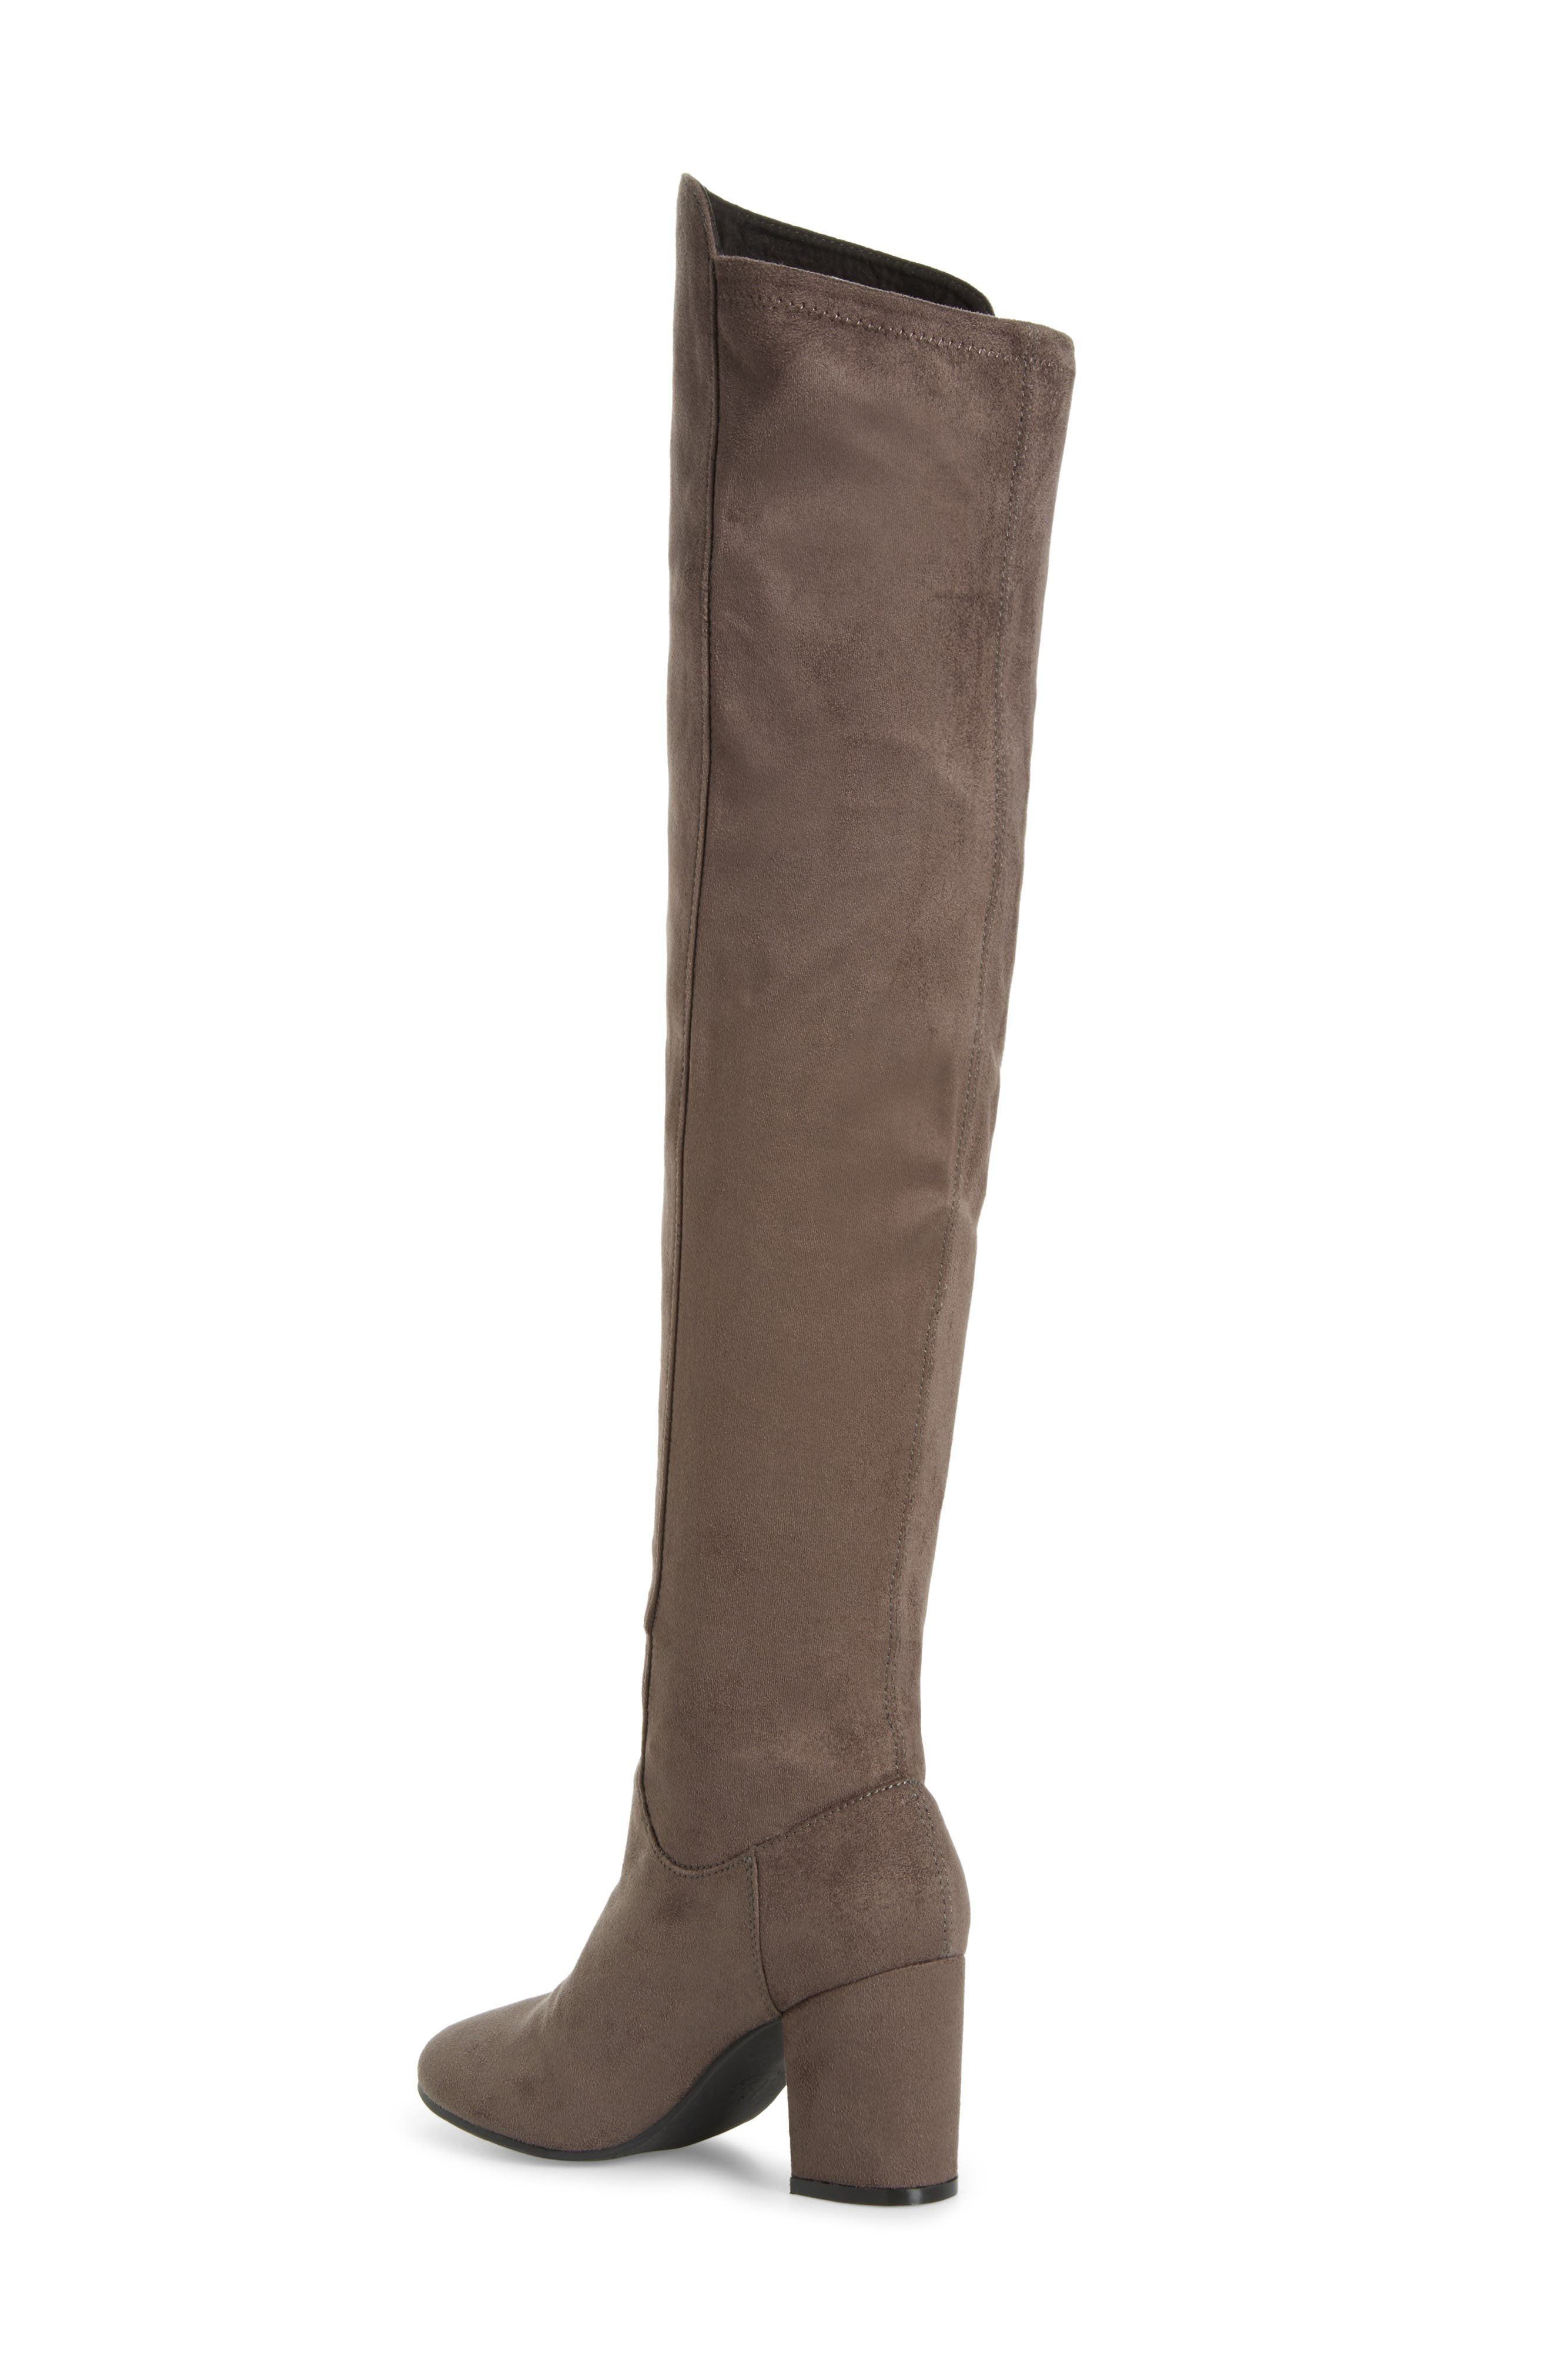 Lynx Stretch Over the Knee Boot,                             Alternate thumbnail 2, color,                             Charcoal Faux Suede